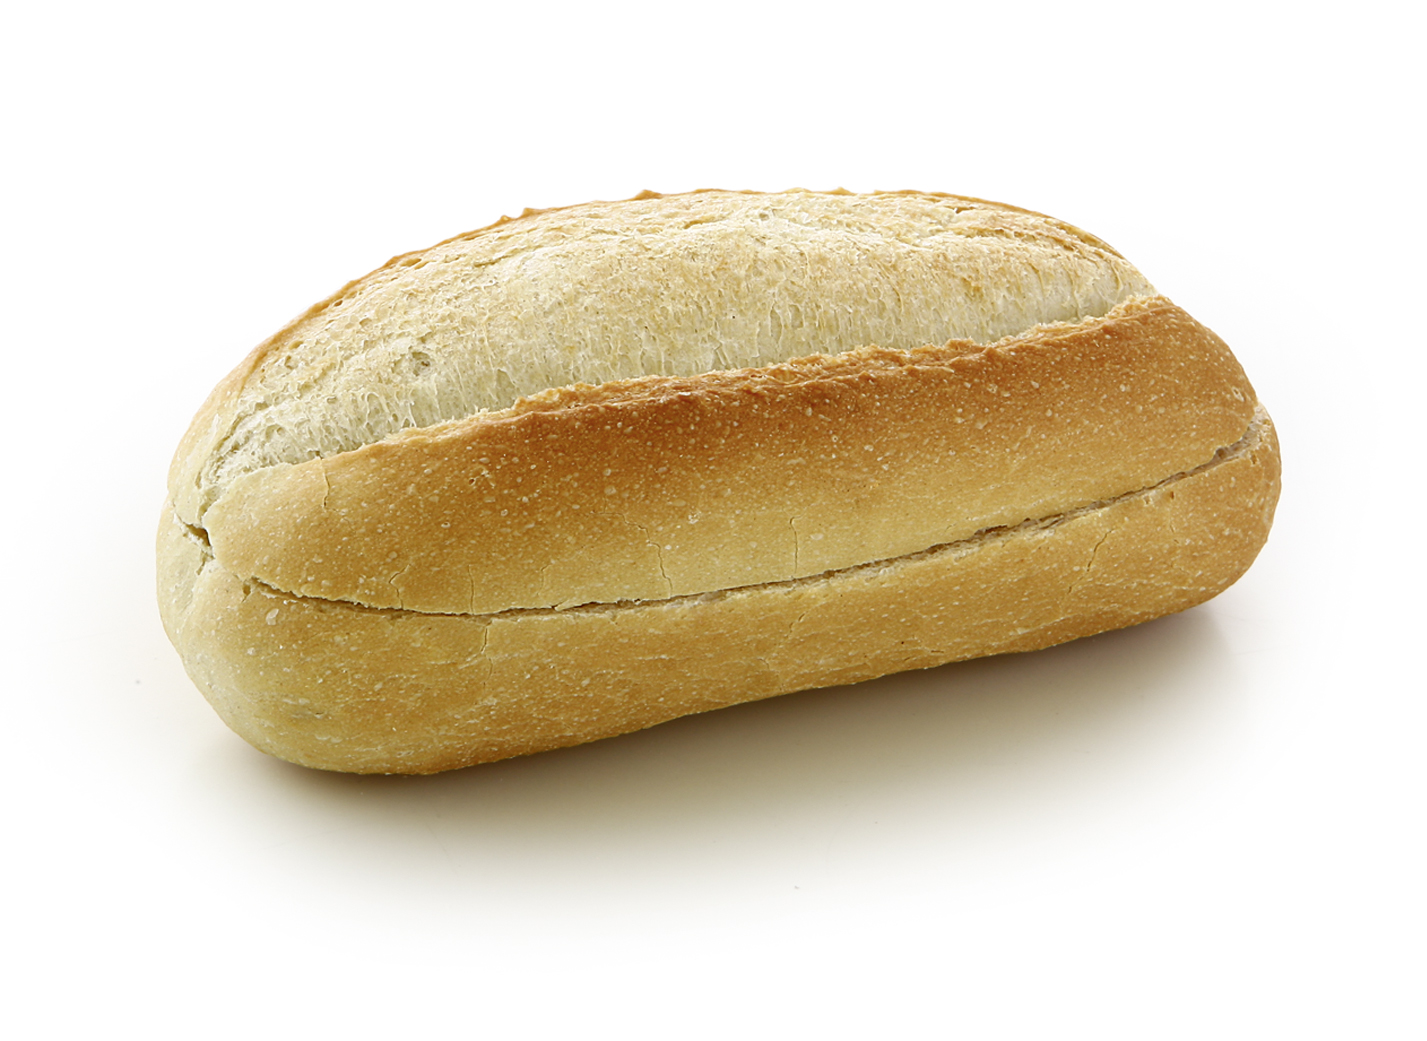 Baguette Roll with Serving Cut - The ready baked wheat roll has a 90° serving cut and is therefore suitable for filling.